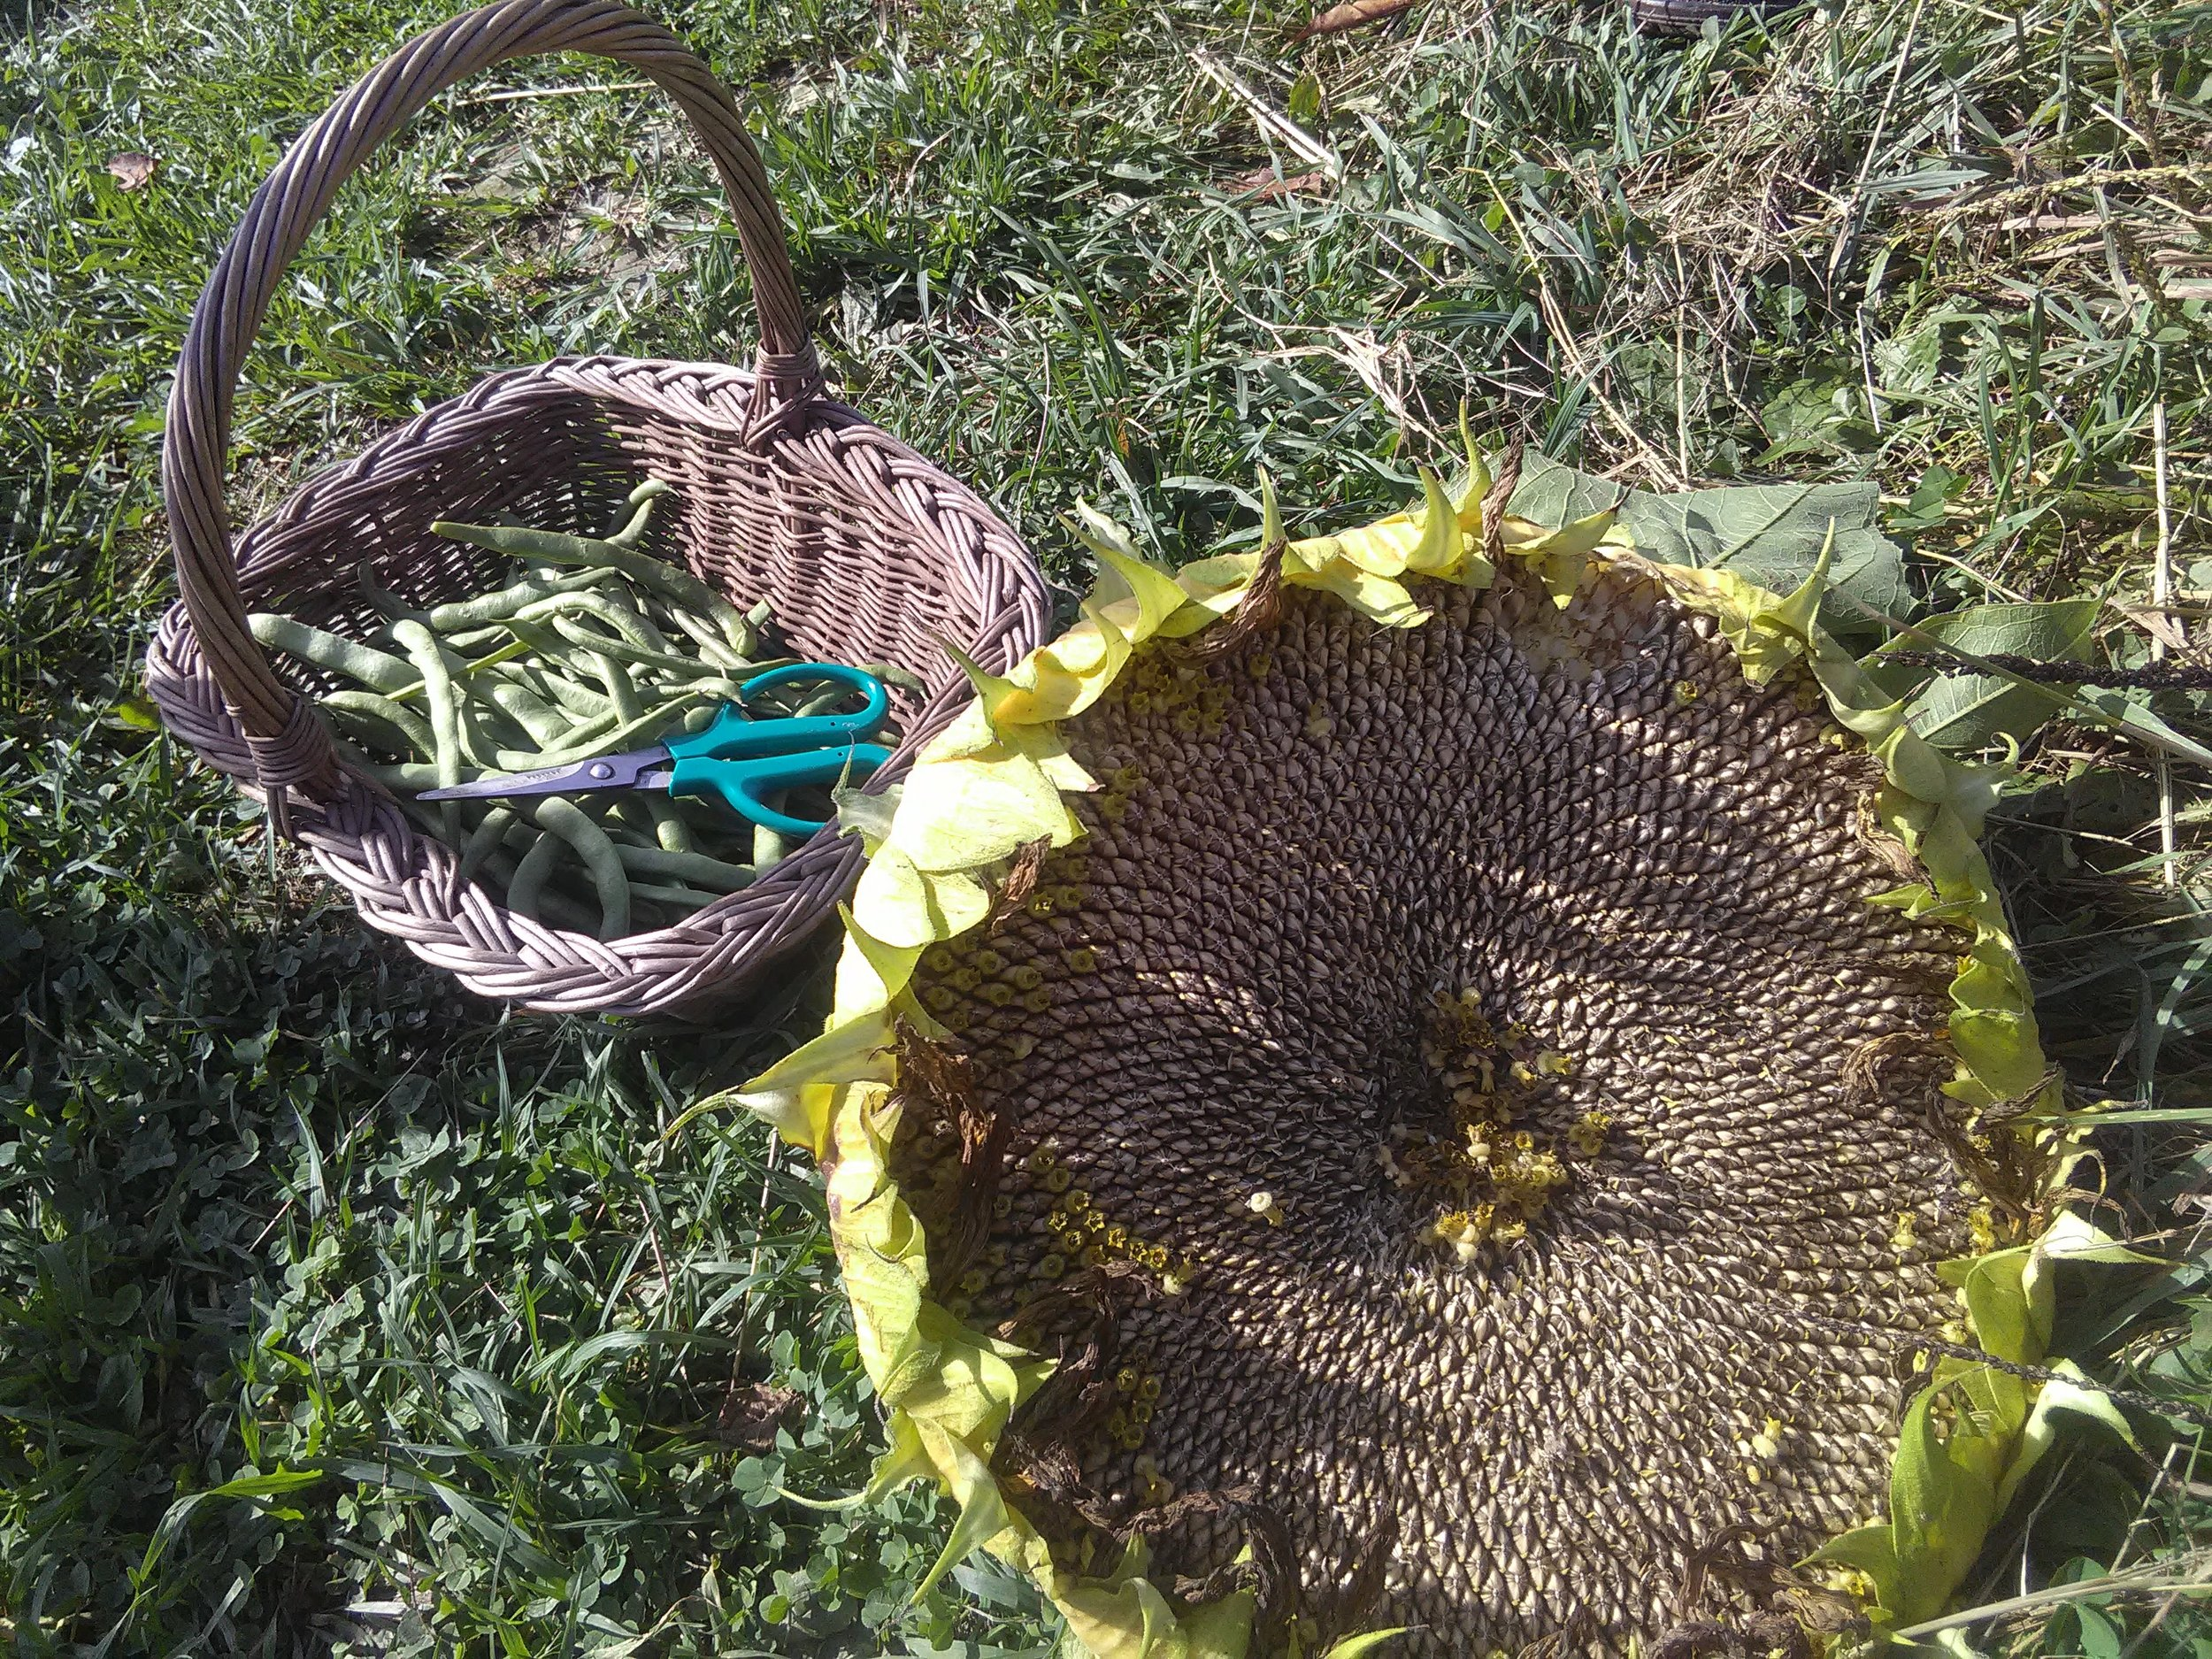 A small but lovely harvest of green beans and sunflower seeds. The seeds will be used as duck/bird feed for the winter. Beauty and function!